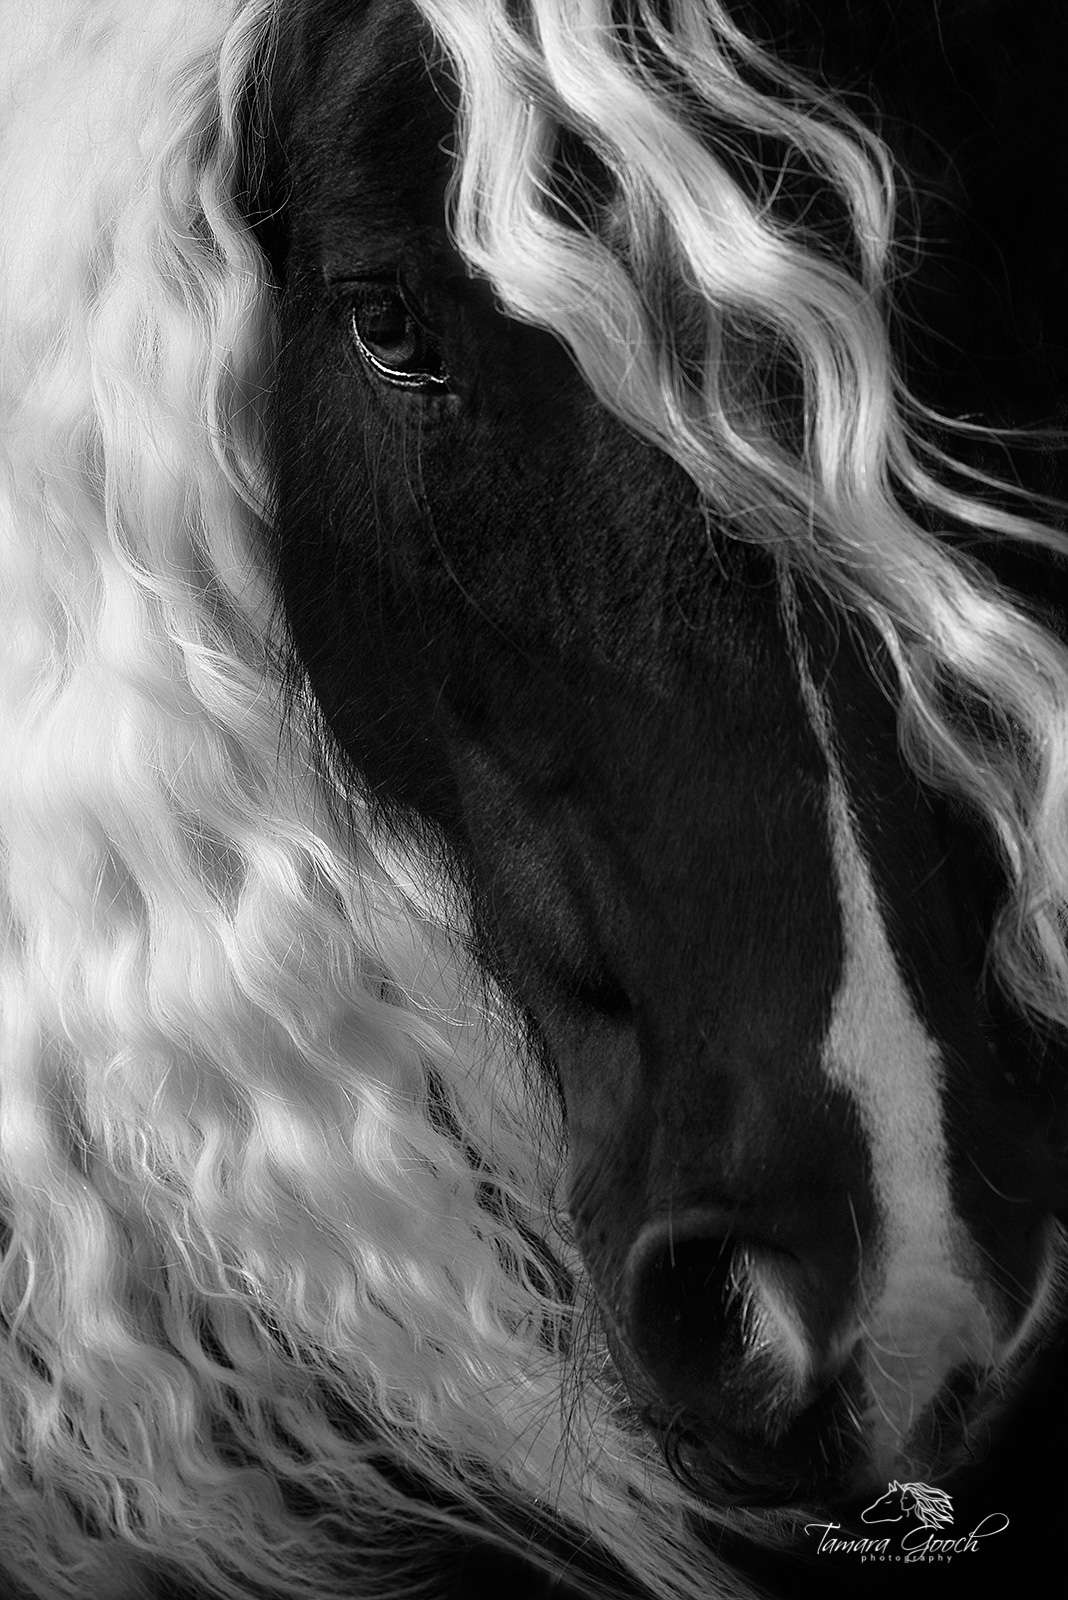 Cob, Gypsy, Gypsy Cob, Gypsy Vanner, Gypsy horses, Idaho, Idaho equine photographers, assignment, black and white, commercial, commissioned, editorial, equestrian, equine, equine photographer, equine , photo